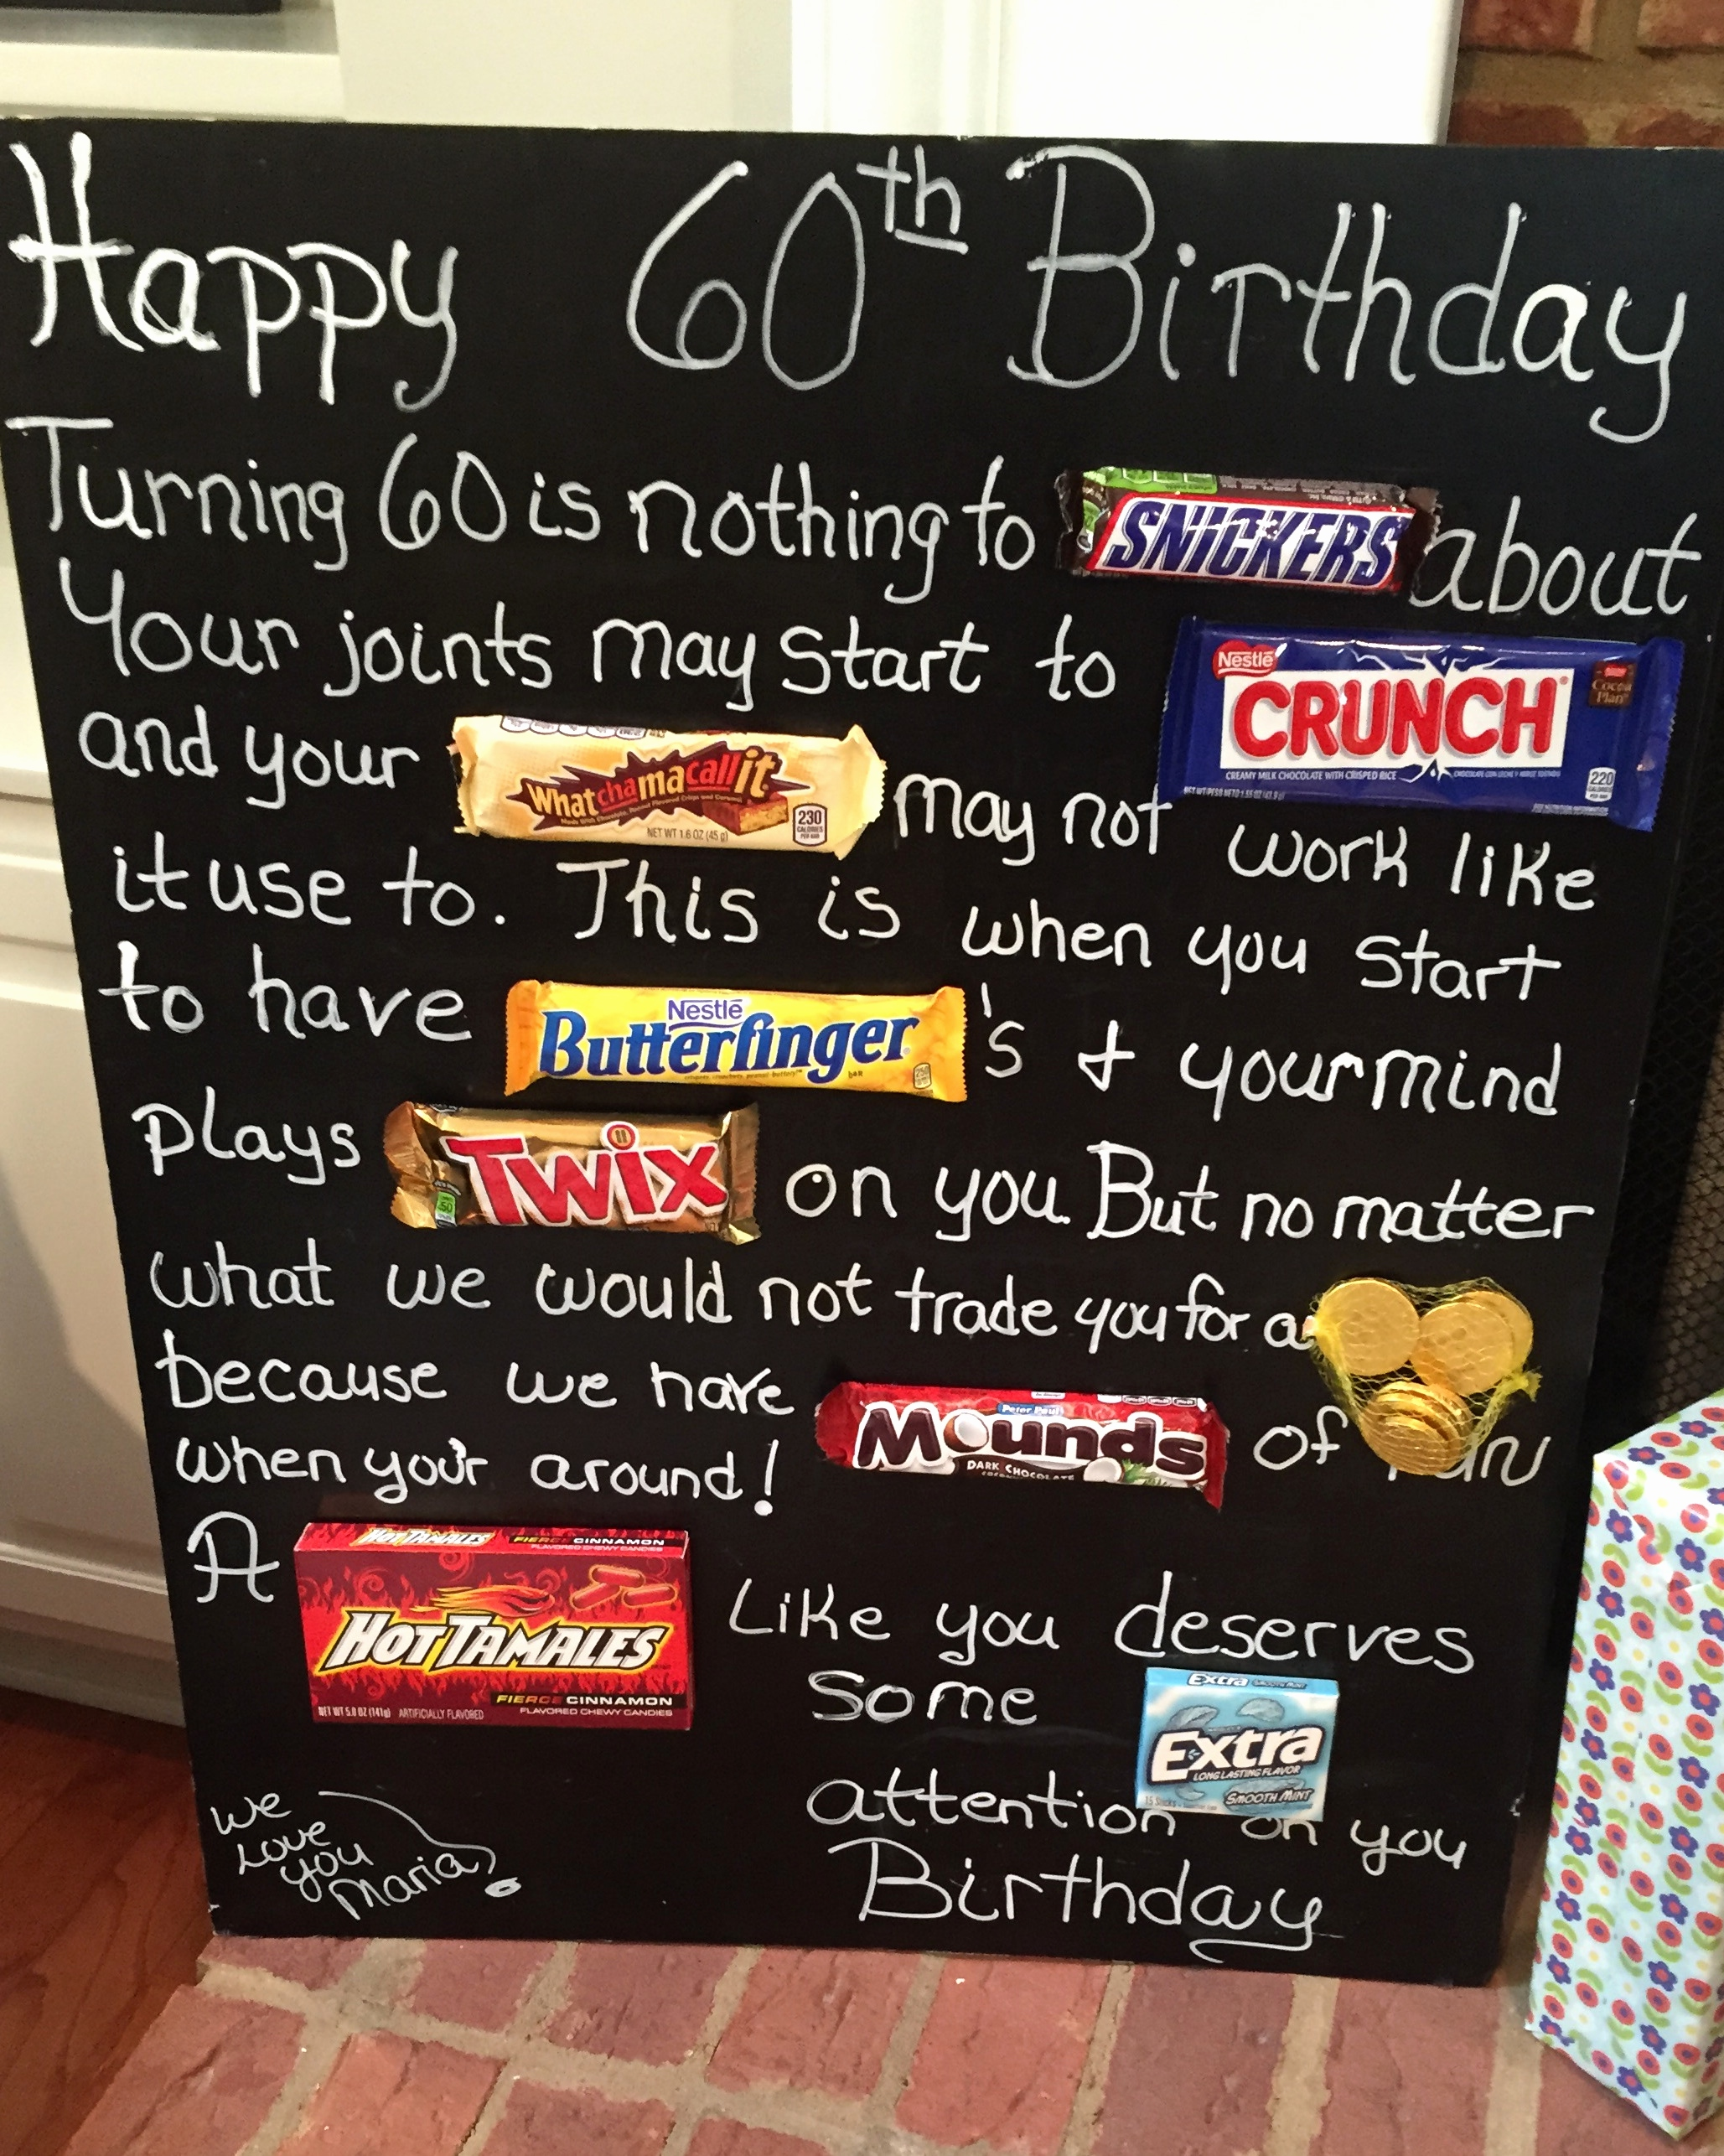 birthday card candy bars ; candy%2520bar%2520birthday%2520card%2520sayings%2520;%2520candy-bar-birthday-card-sayings-lovely-old-age-over-the-hill-60th-birthday-card-poster-using-candy-bars-of-candy-bar-birthday-card-sayings